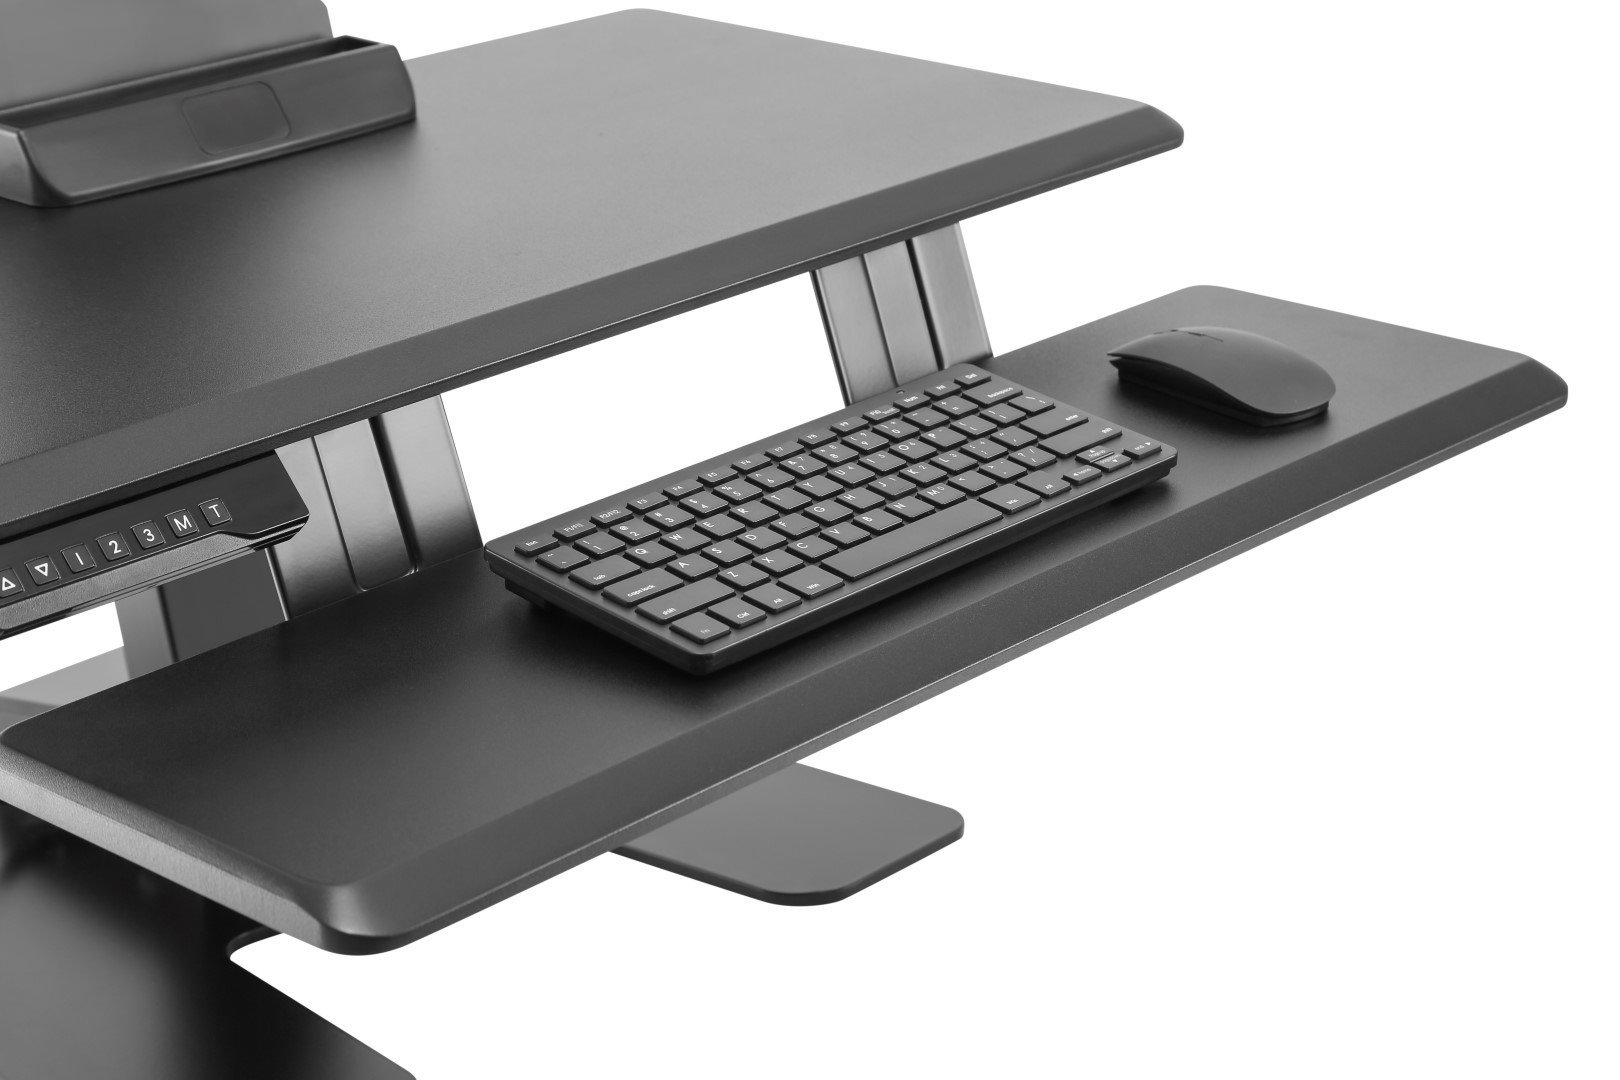 E-Lift S keyboard tray with keyboard and mouse